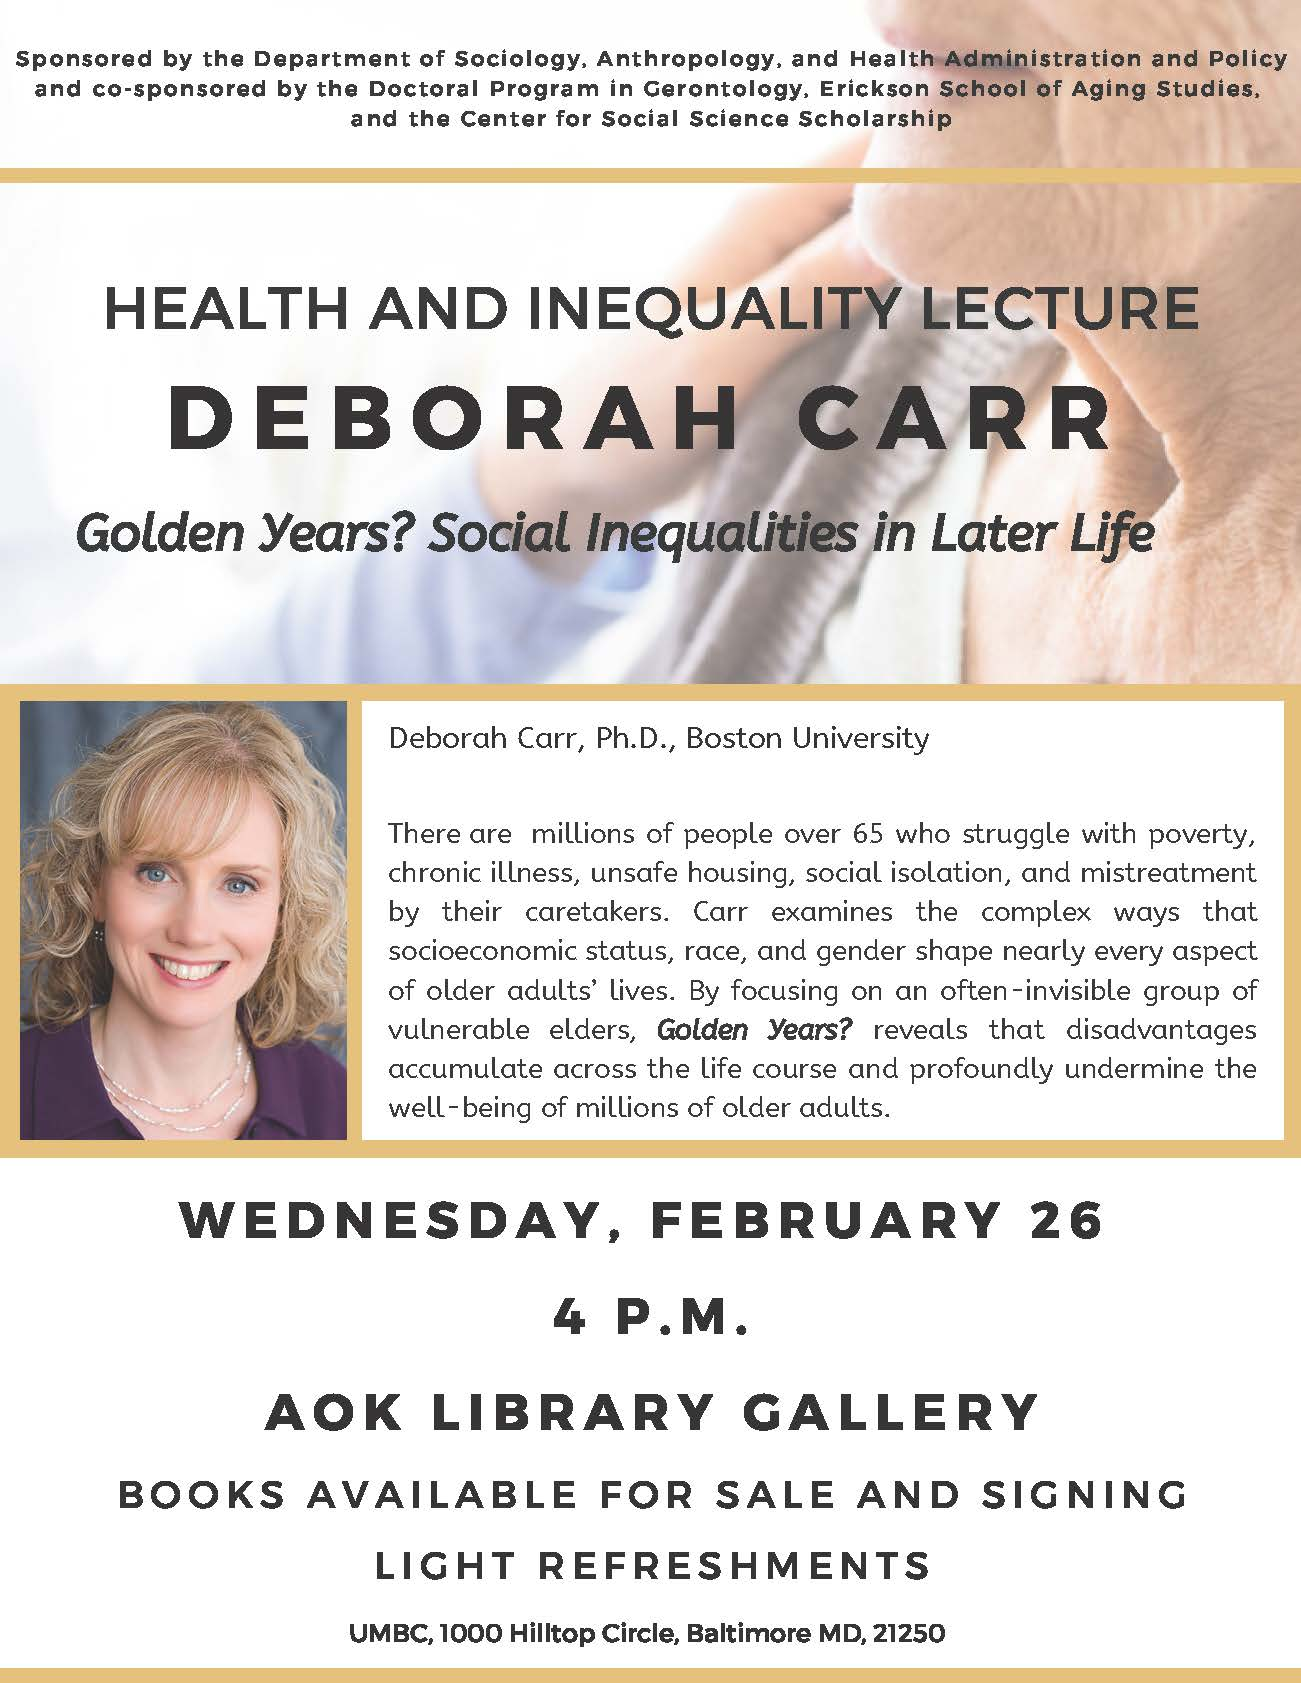 Health and Inequality Lecture on February 26th at 4 PM